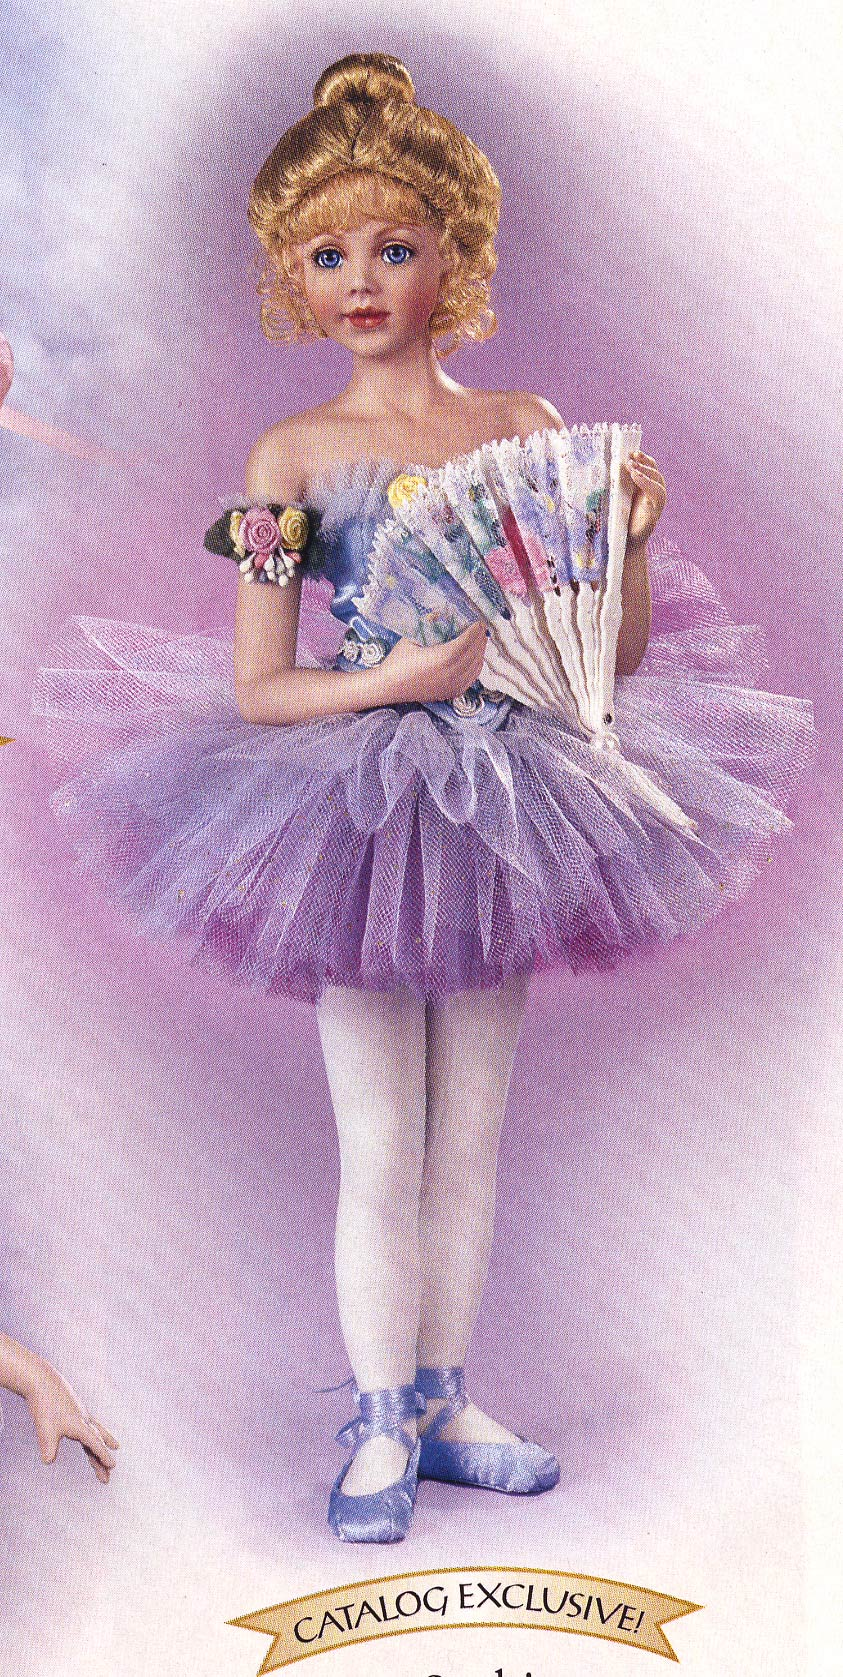 Sophie Degas Ballerina doll by Cindy McClure 2003 2004